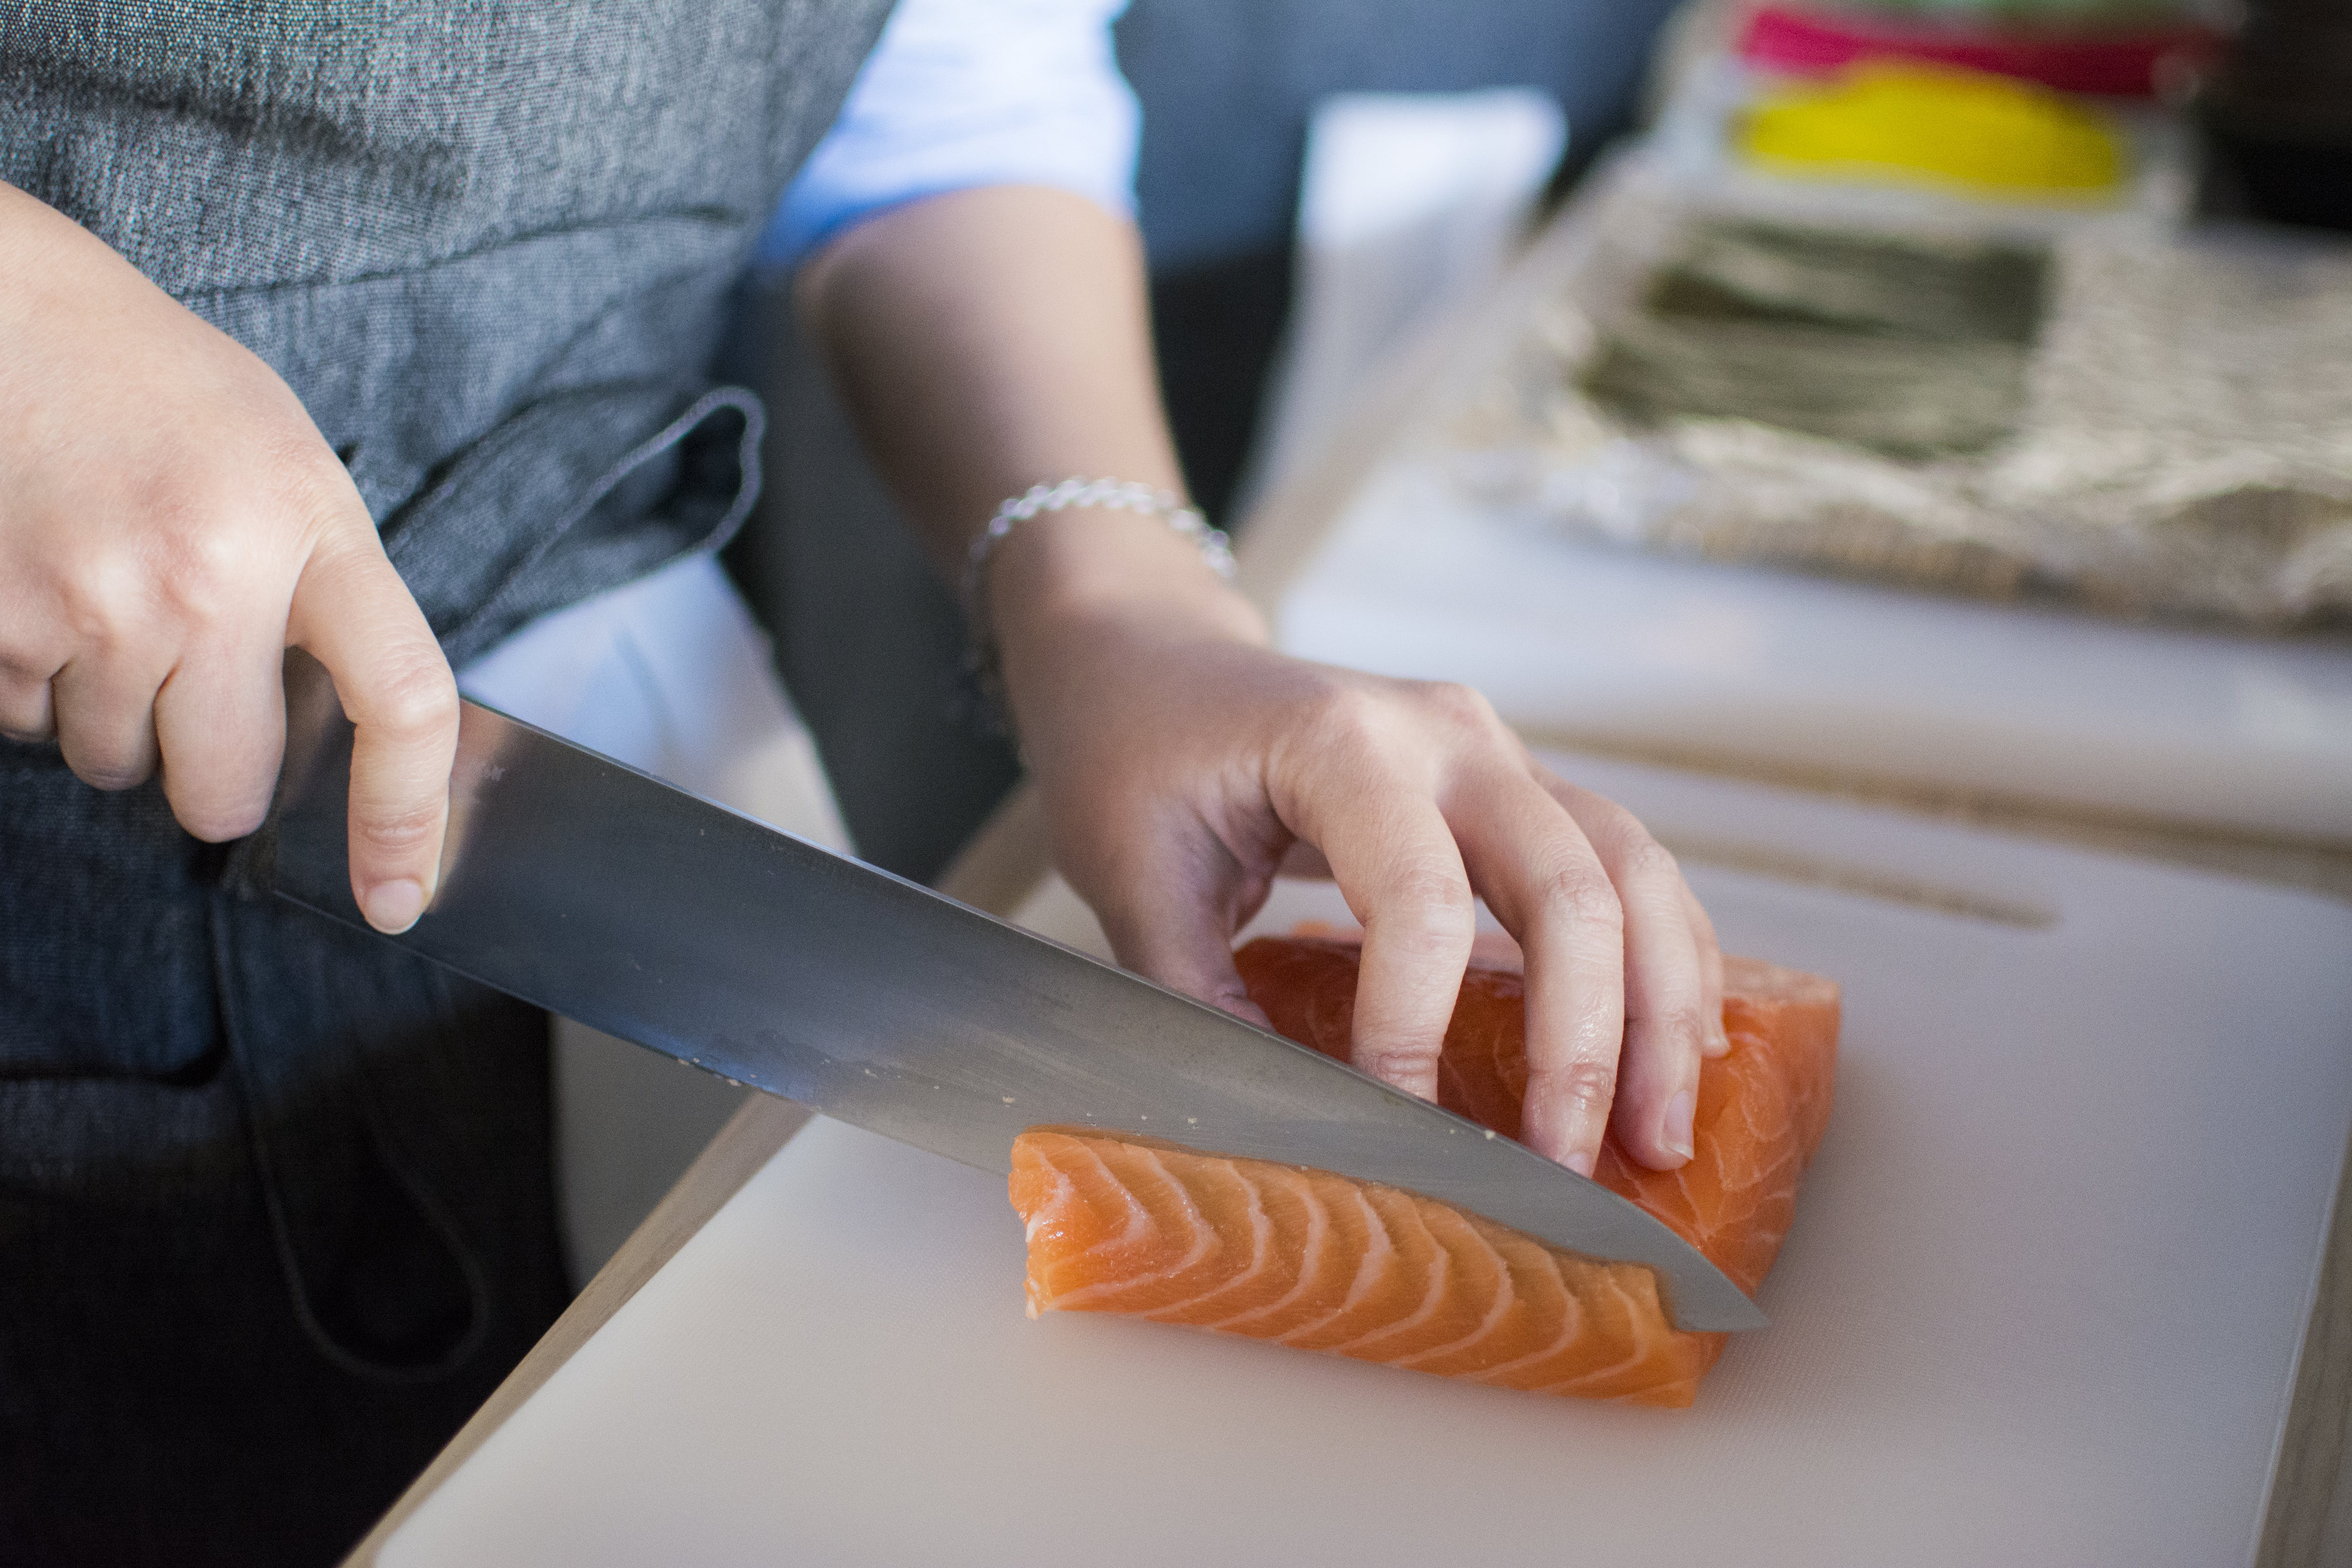 Person Slicing Meat On White Chopping Board